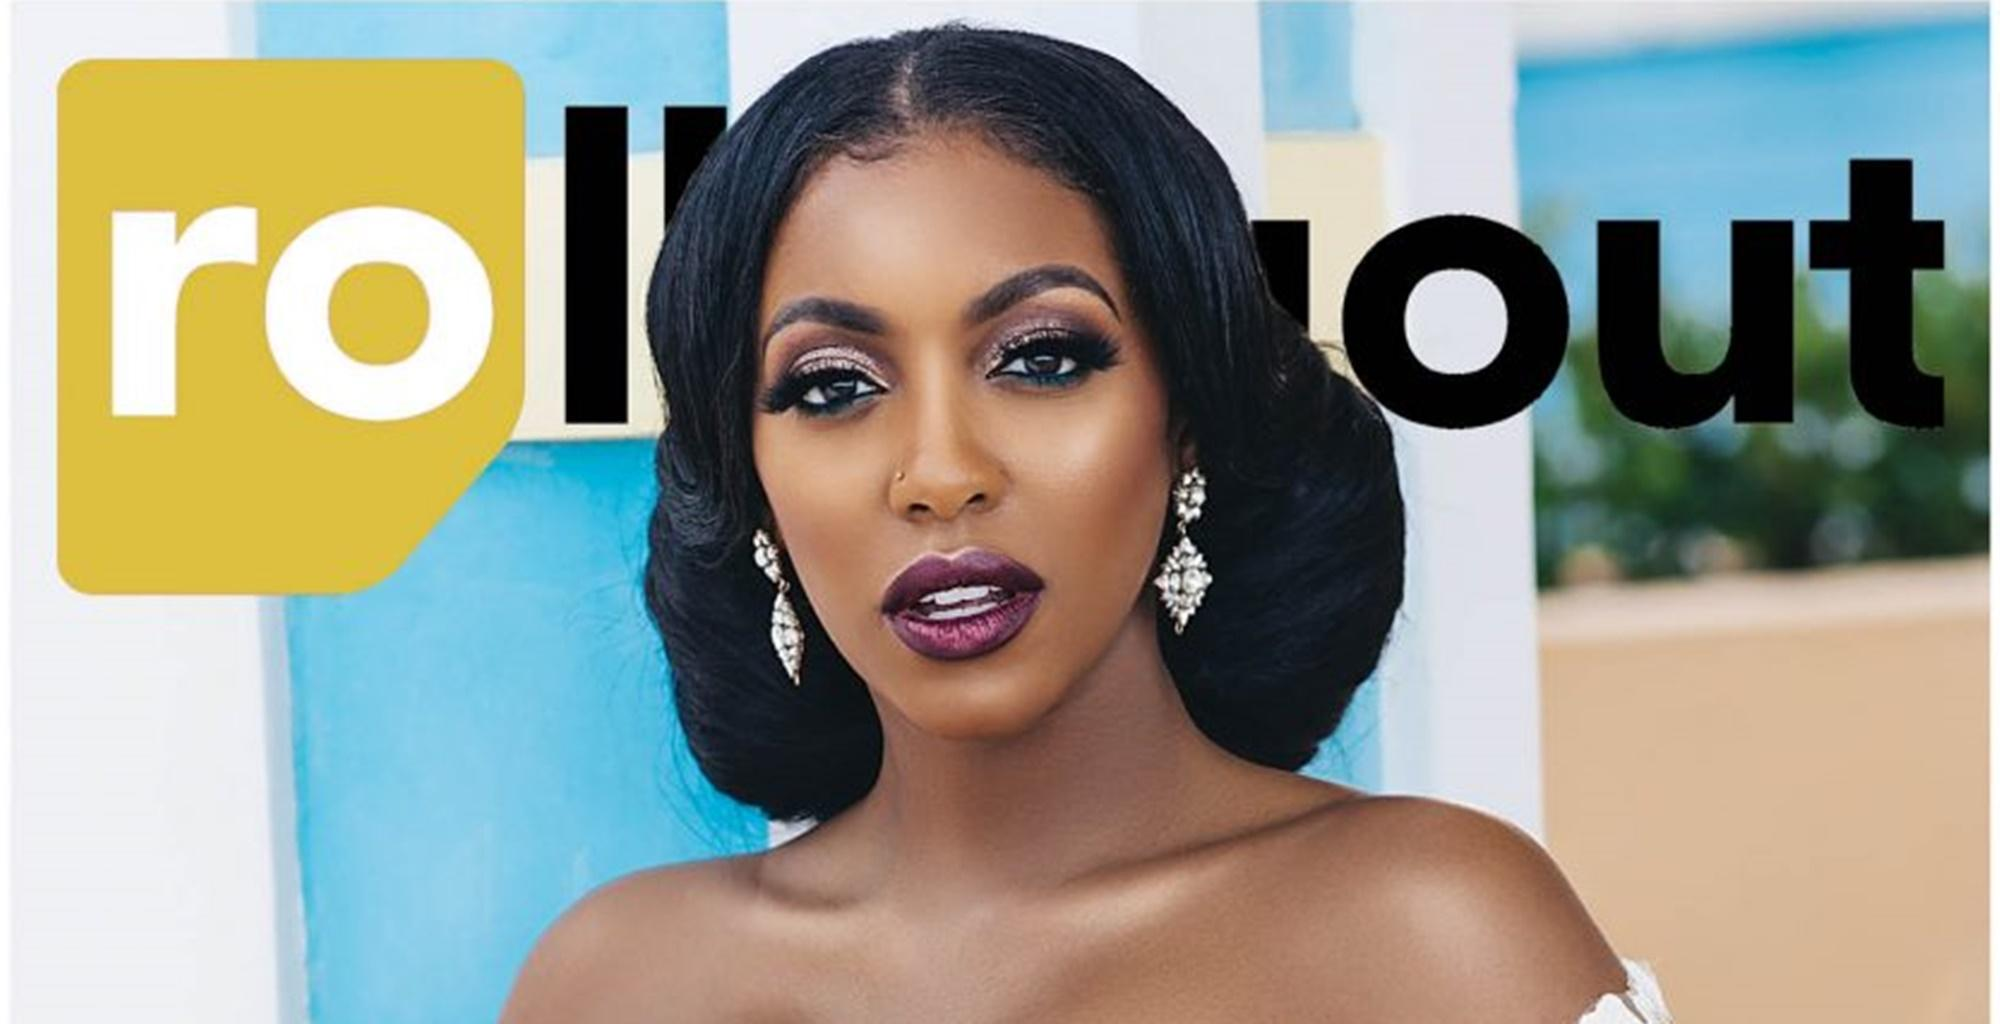 Porsha Williams Shows Off Curves In Stunning Yellow Dress As A Real-Life Barbie -- 'RHOA' Fans Love Dennis McKinley's Wife's Baby Bump Picture